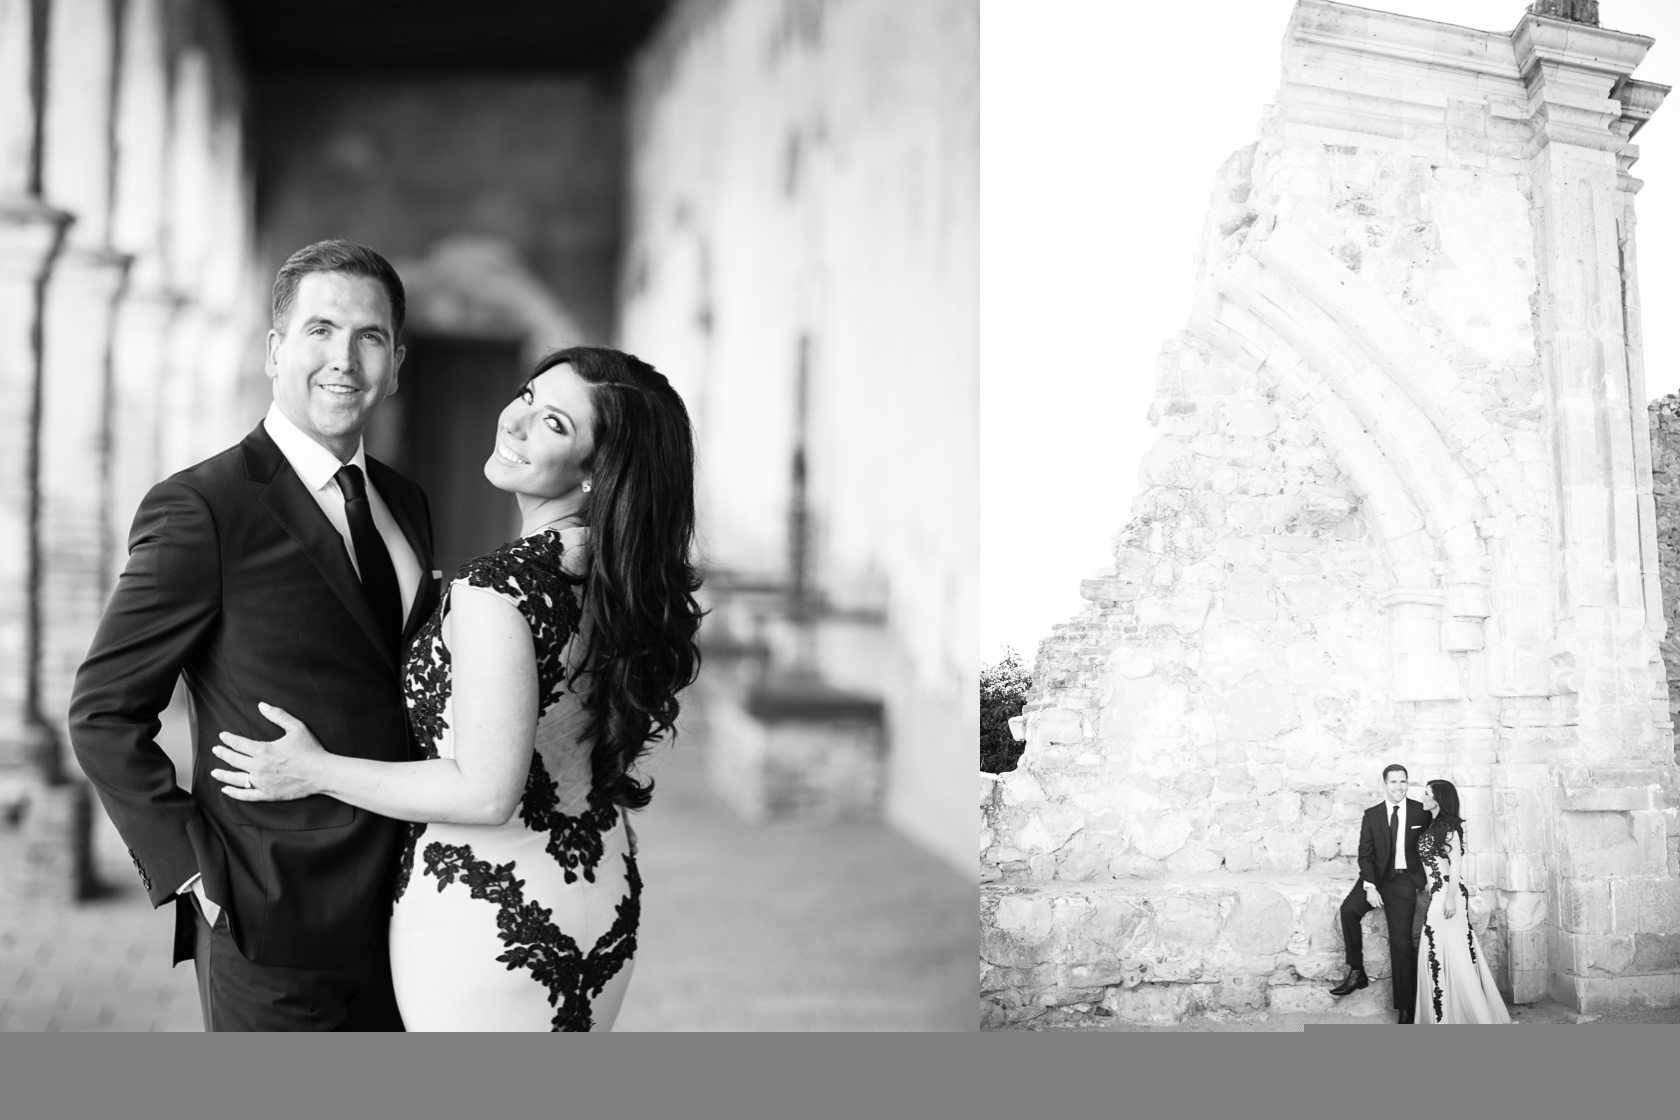 Mission_San_Juan_Capistrano_Engagement_Session_16.jpg